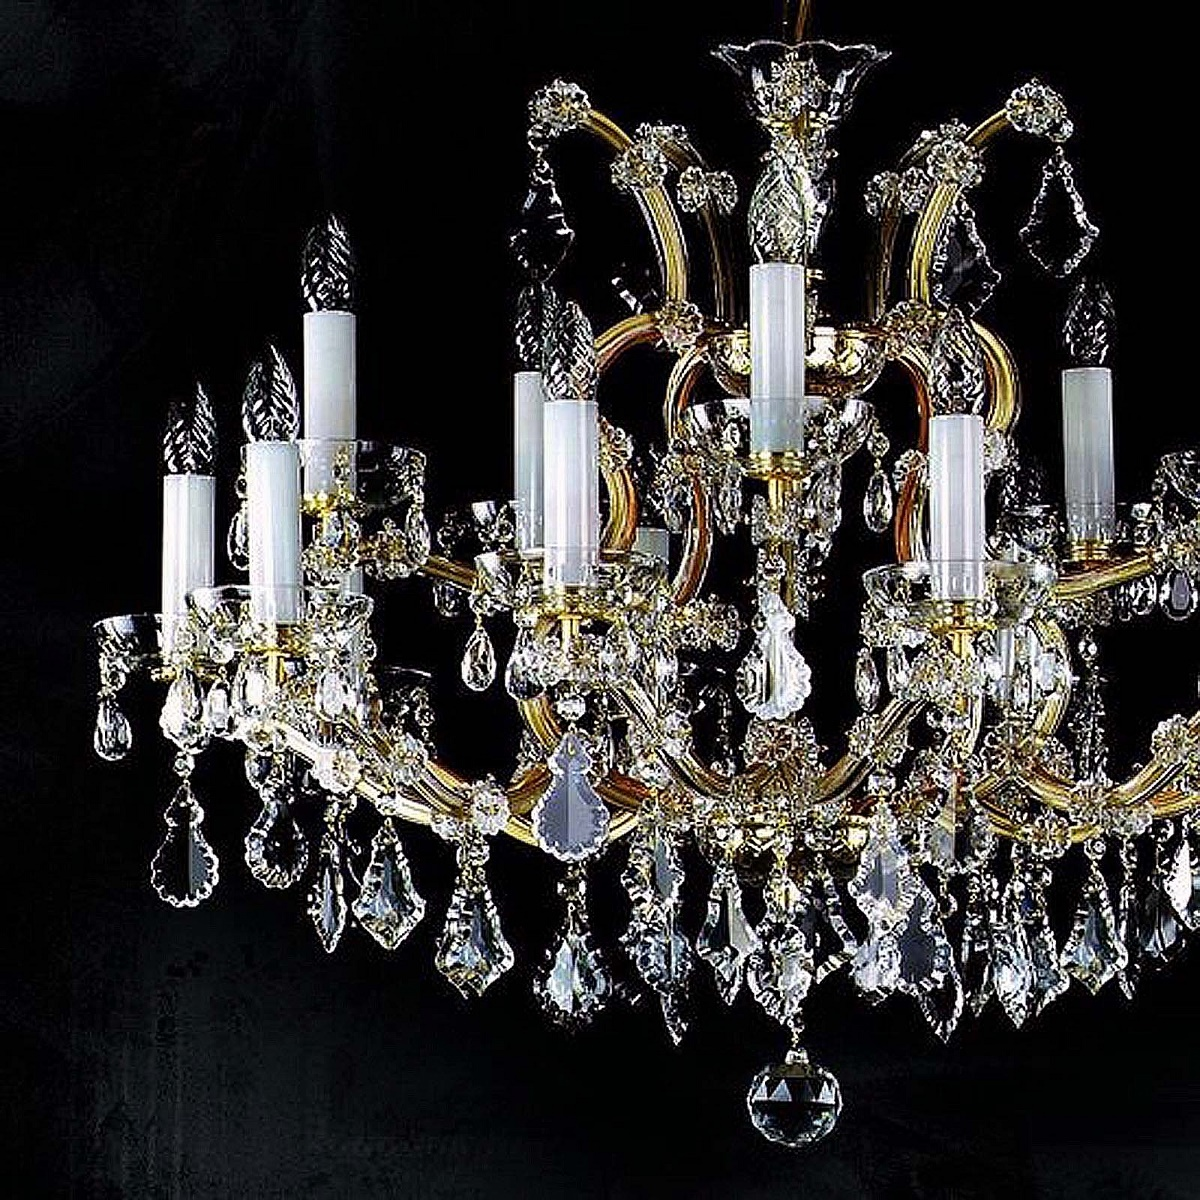 Crystal Chandelier MARIA TEREZIA 14 0